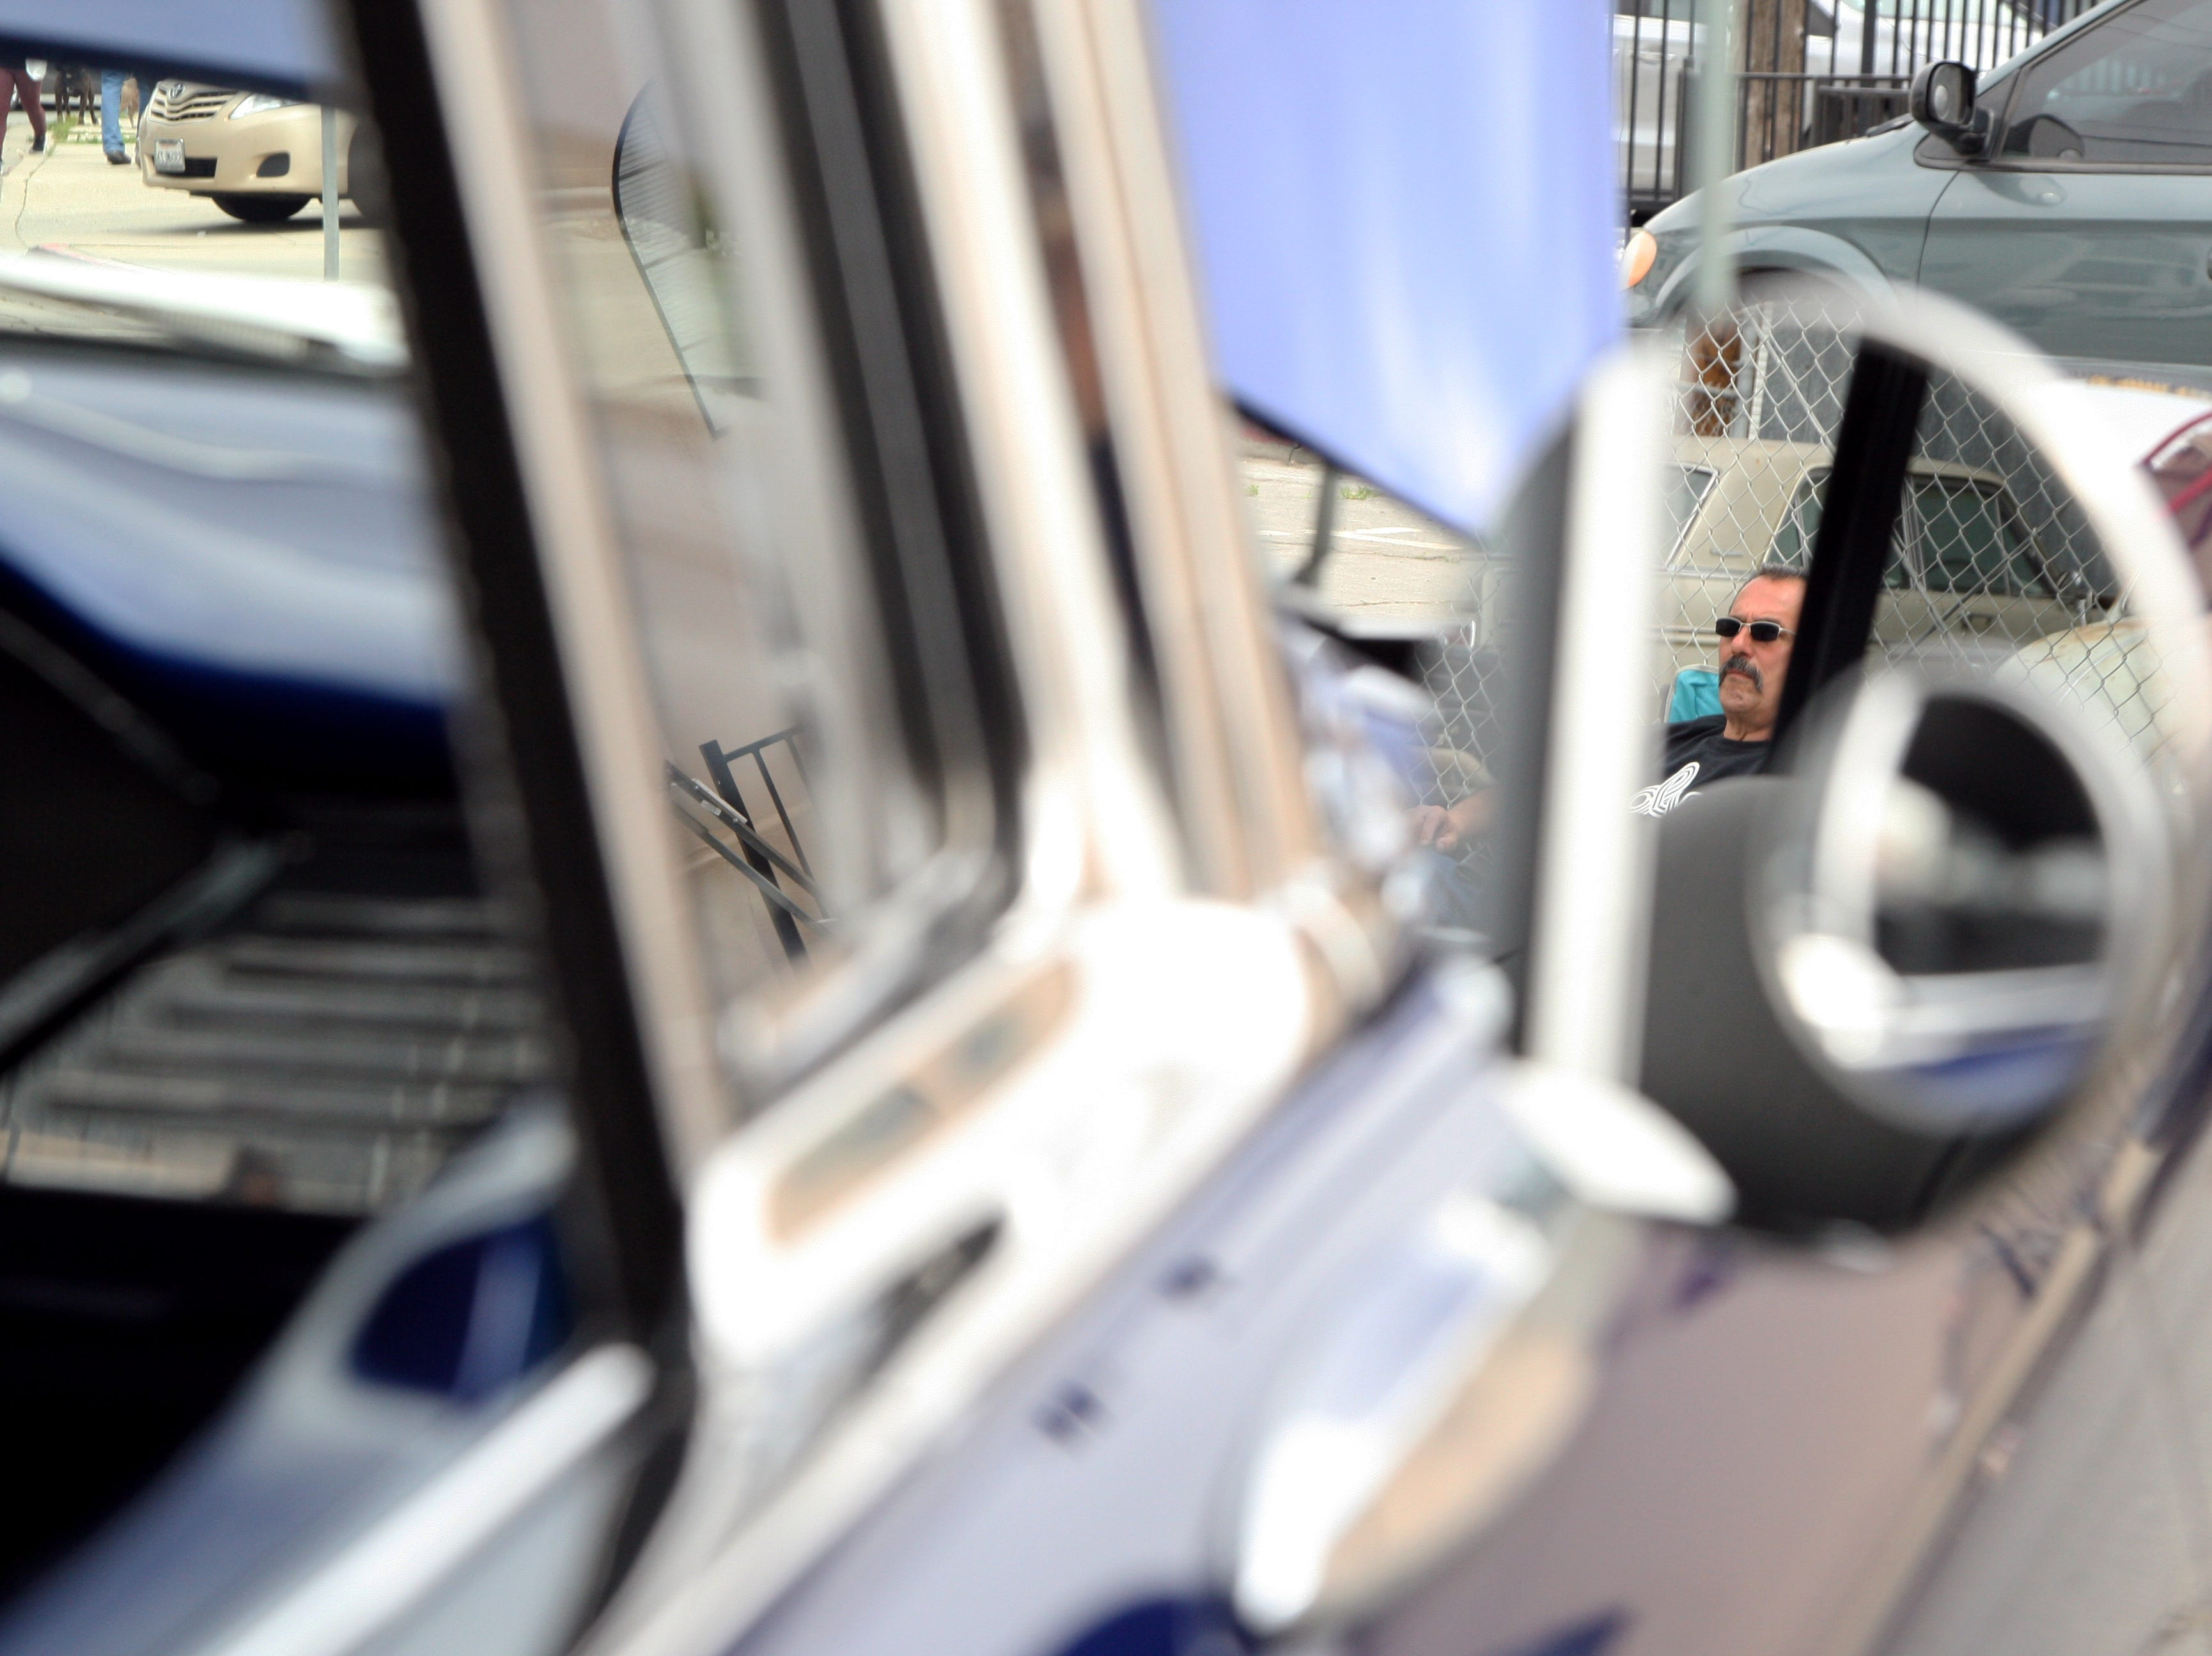 Robert Barba is pictured in the reflection in the sideview mirror of a classic car. This is his first year attending the Annual Asian Festival in Salinas's Historic Chinatown, but he is a regular at car shows. He owns a 1966 Chevy Impala, which he brought along Saturday. April 27, 2019.